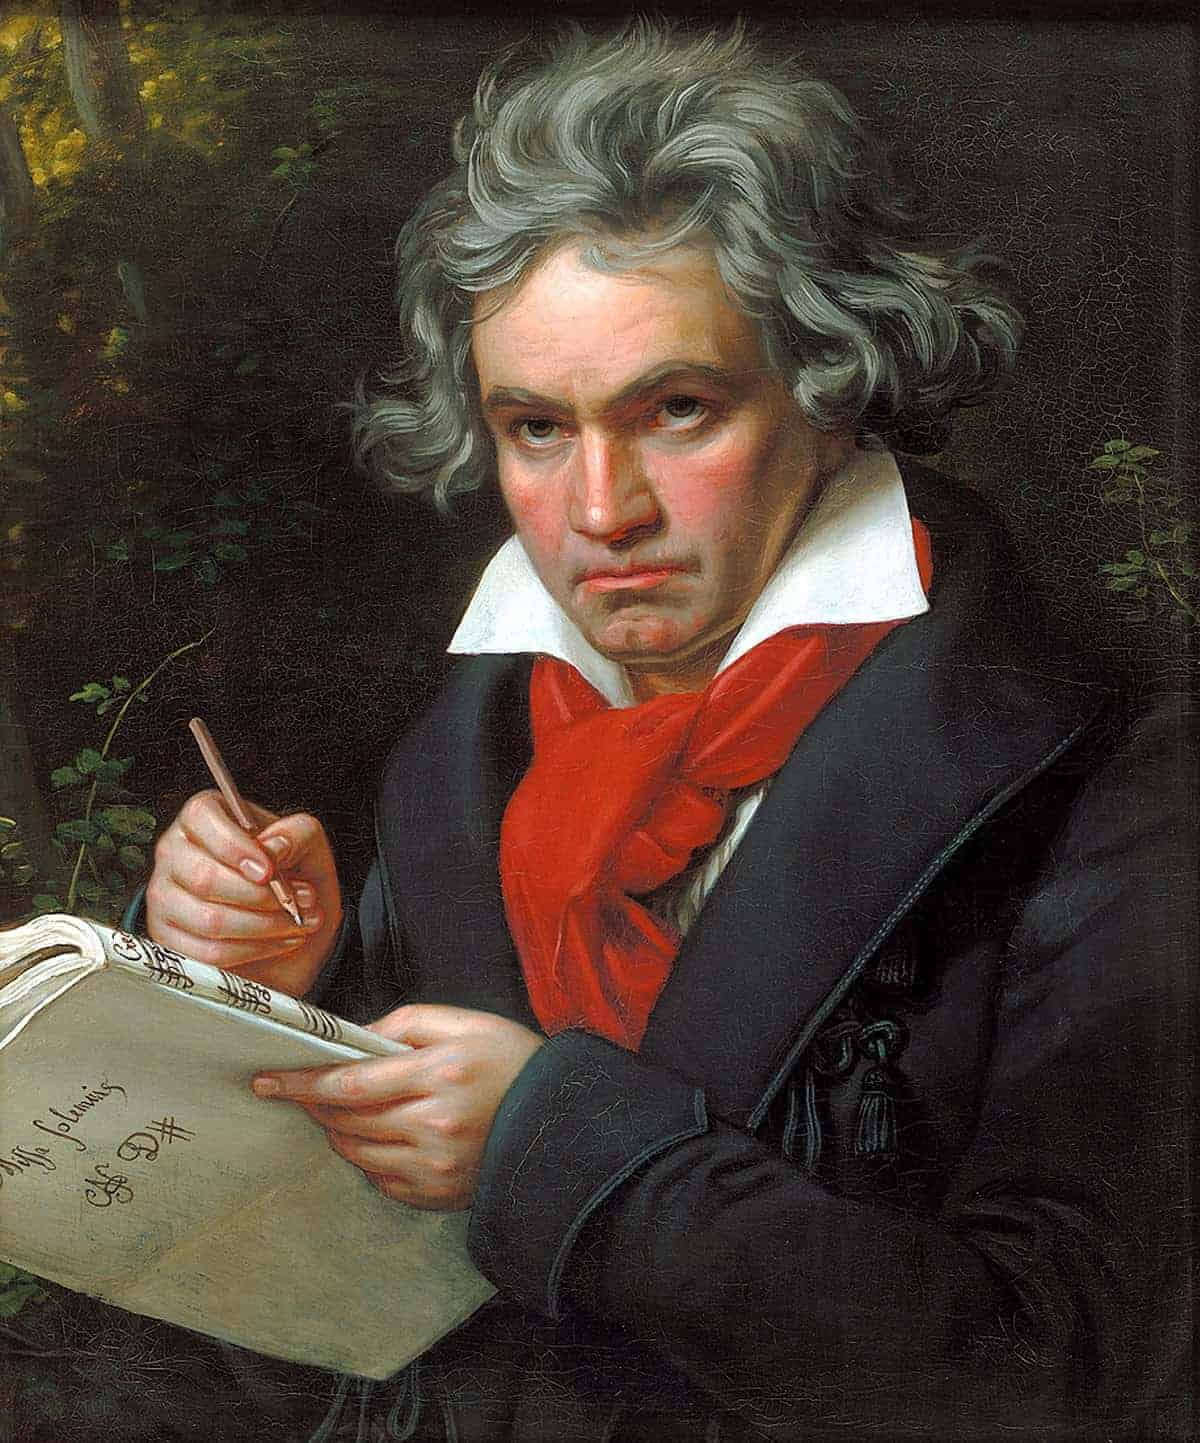 1200px-Beethoven